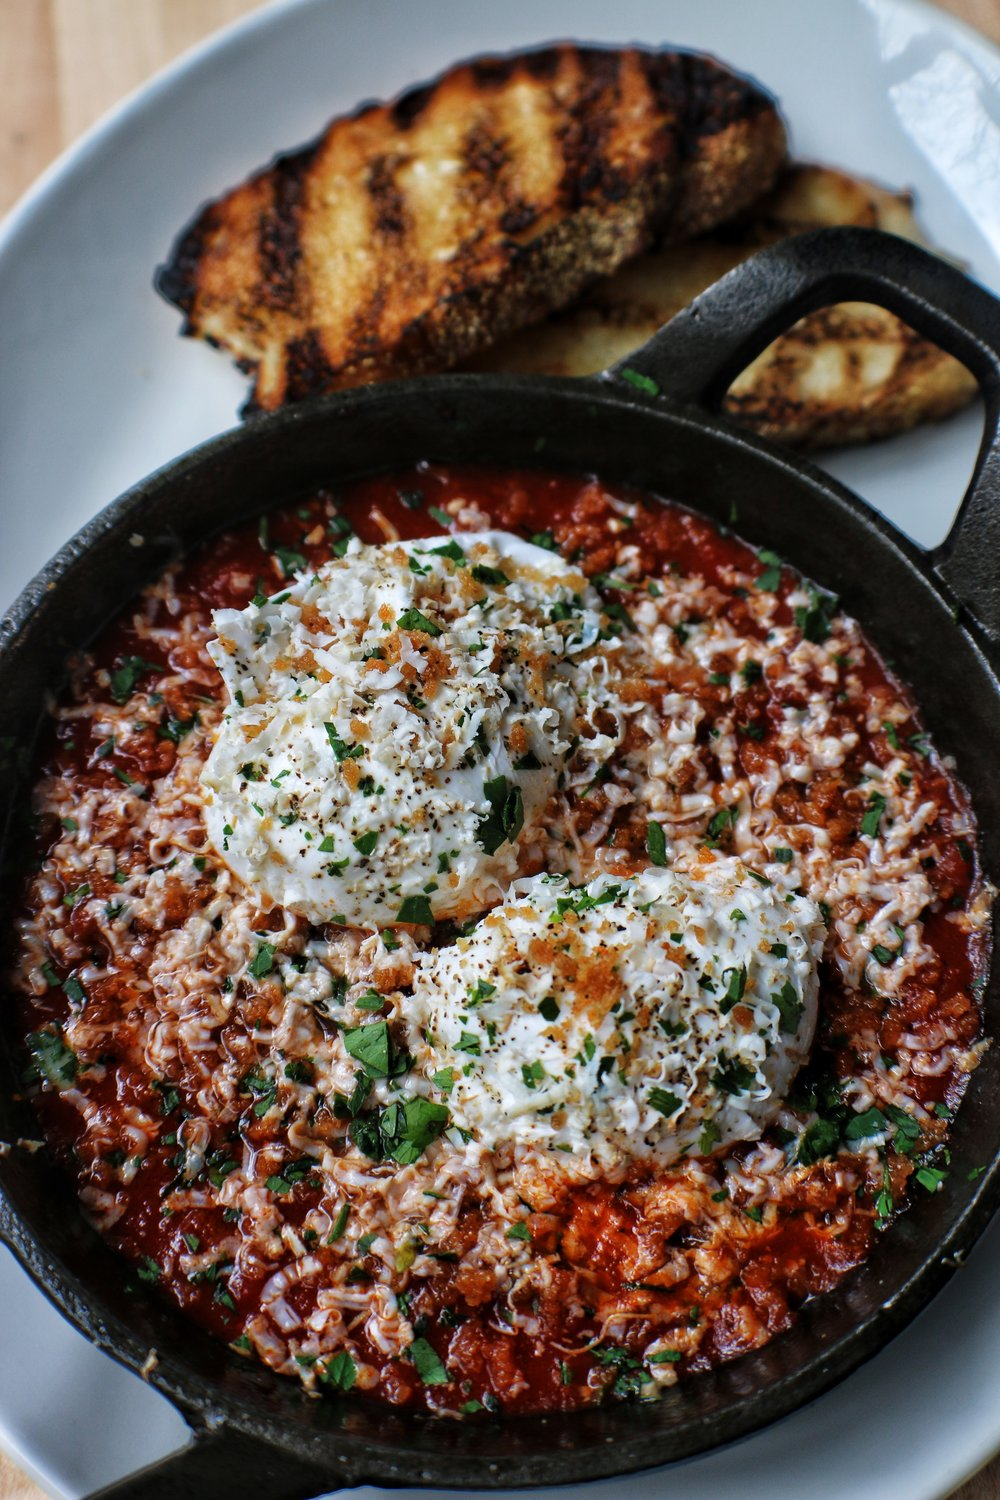 sunday gravy eggs in purgatory with smoked ricotta silatta & grilled bread